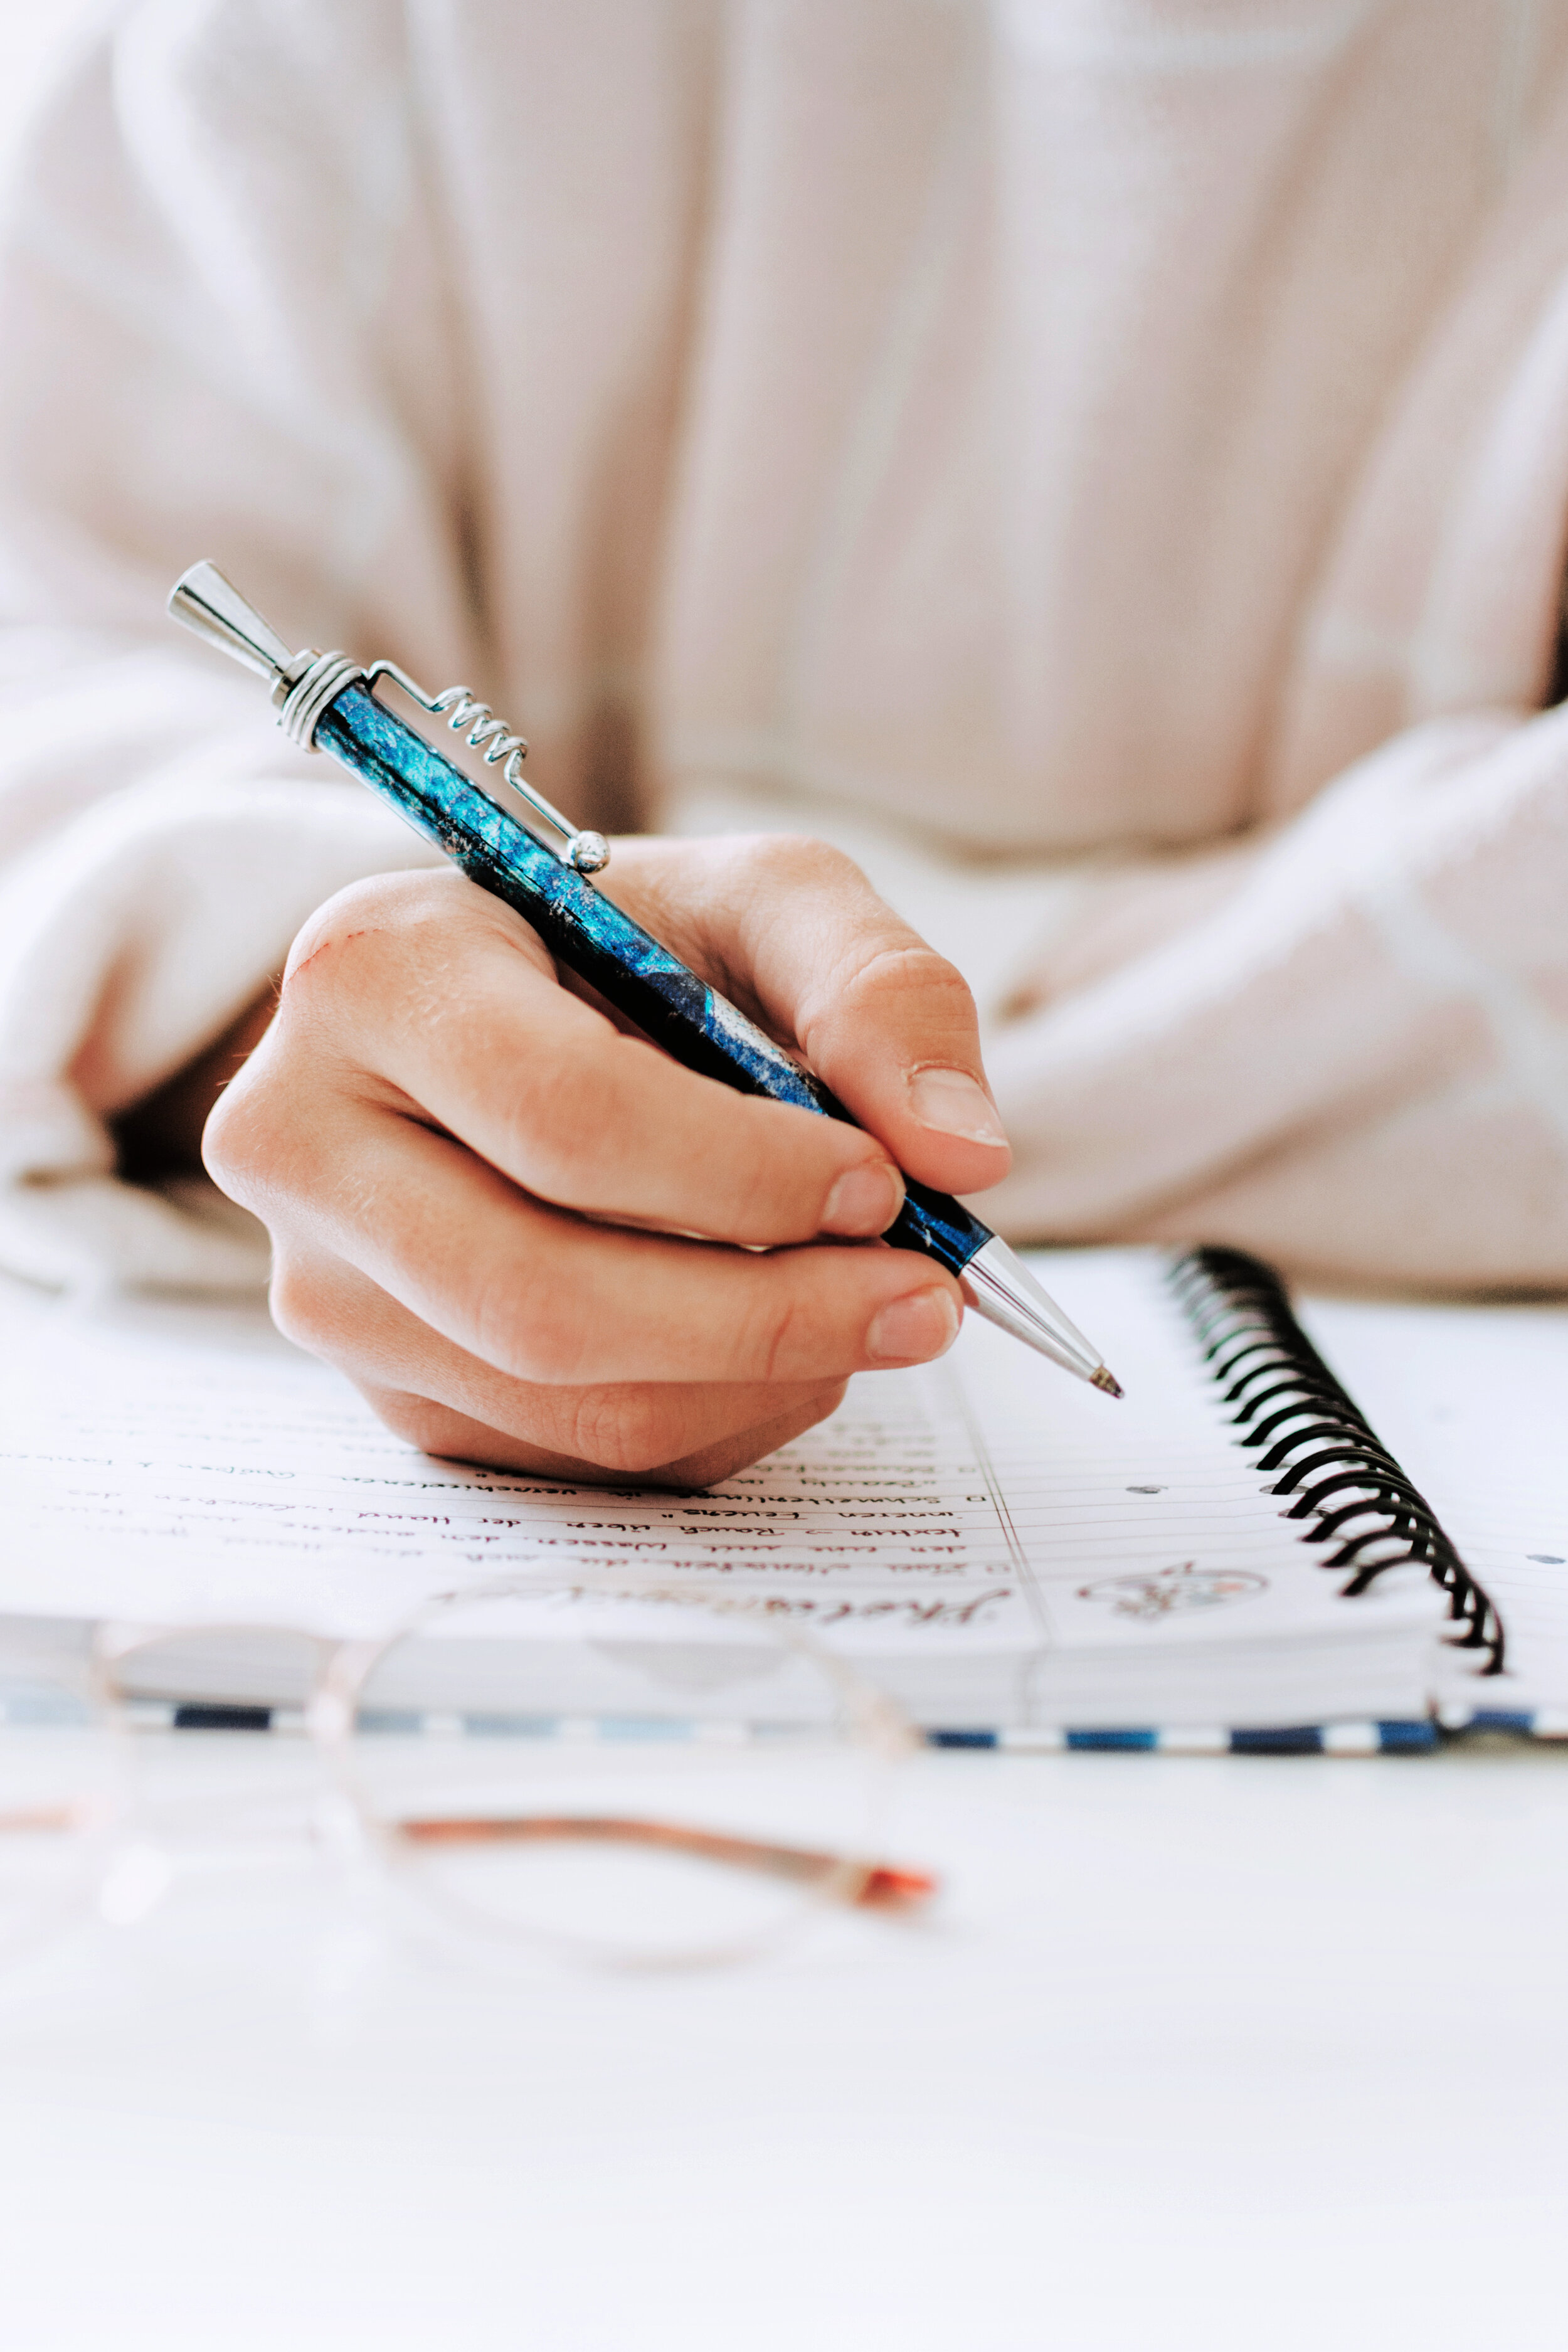 How to Make Journaling Part of Your Daily Routine